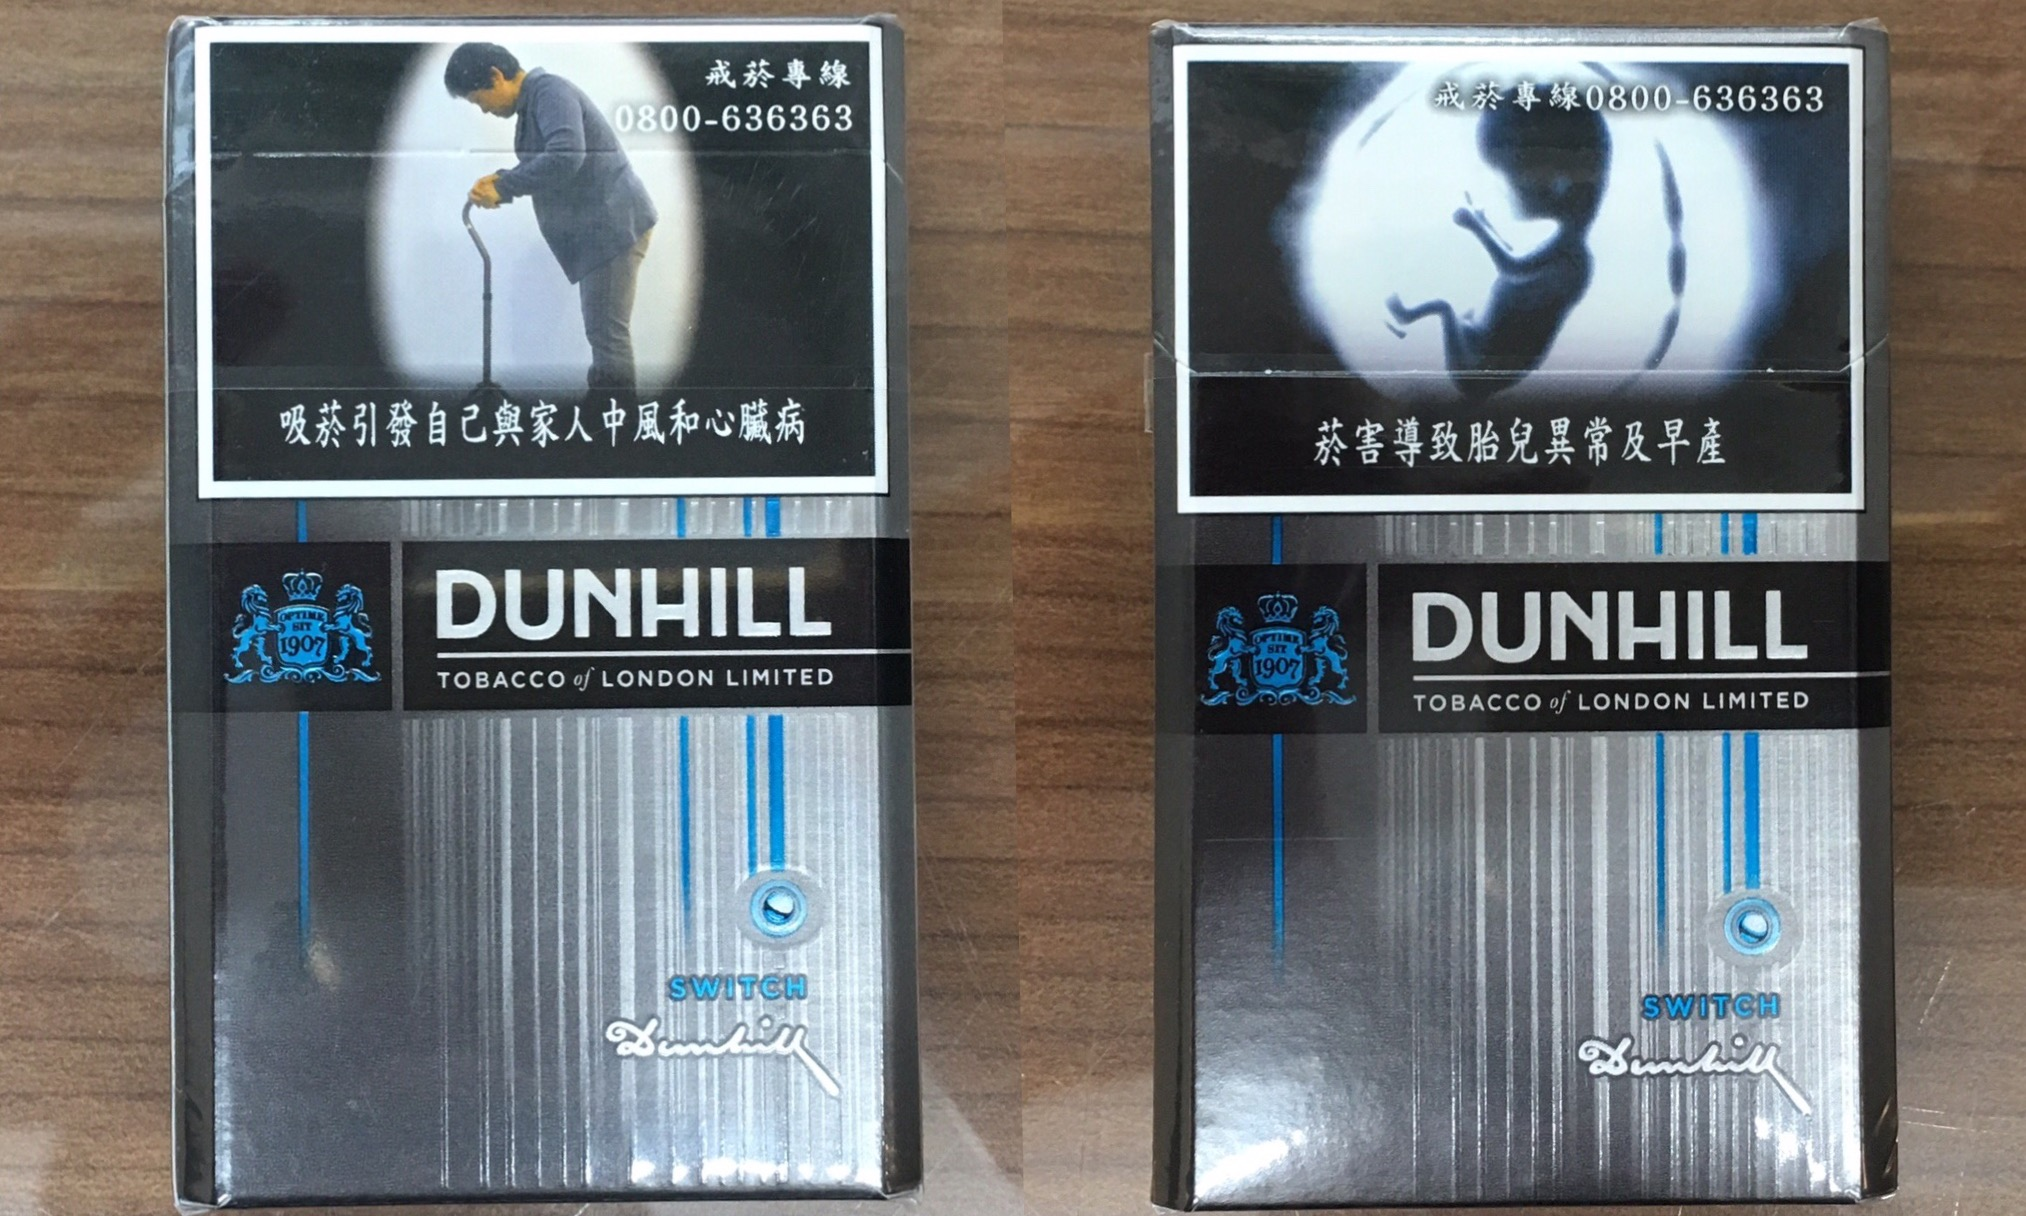 File:Dunhill in Taiwan.jpg - Wikimedia Commons